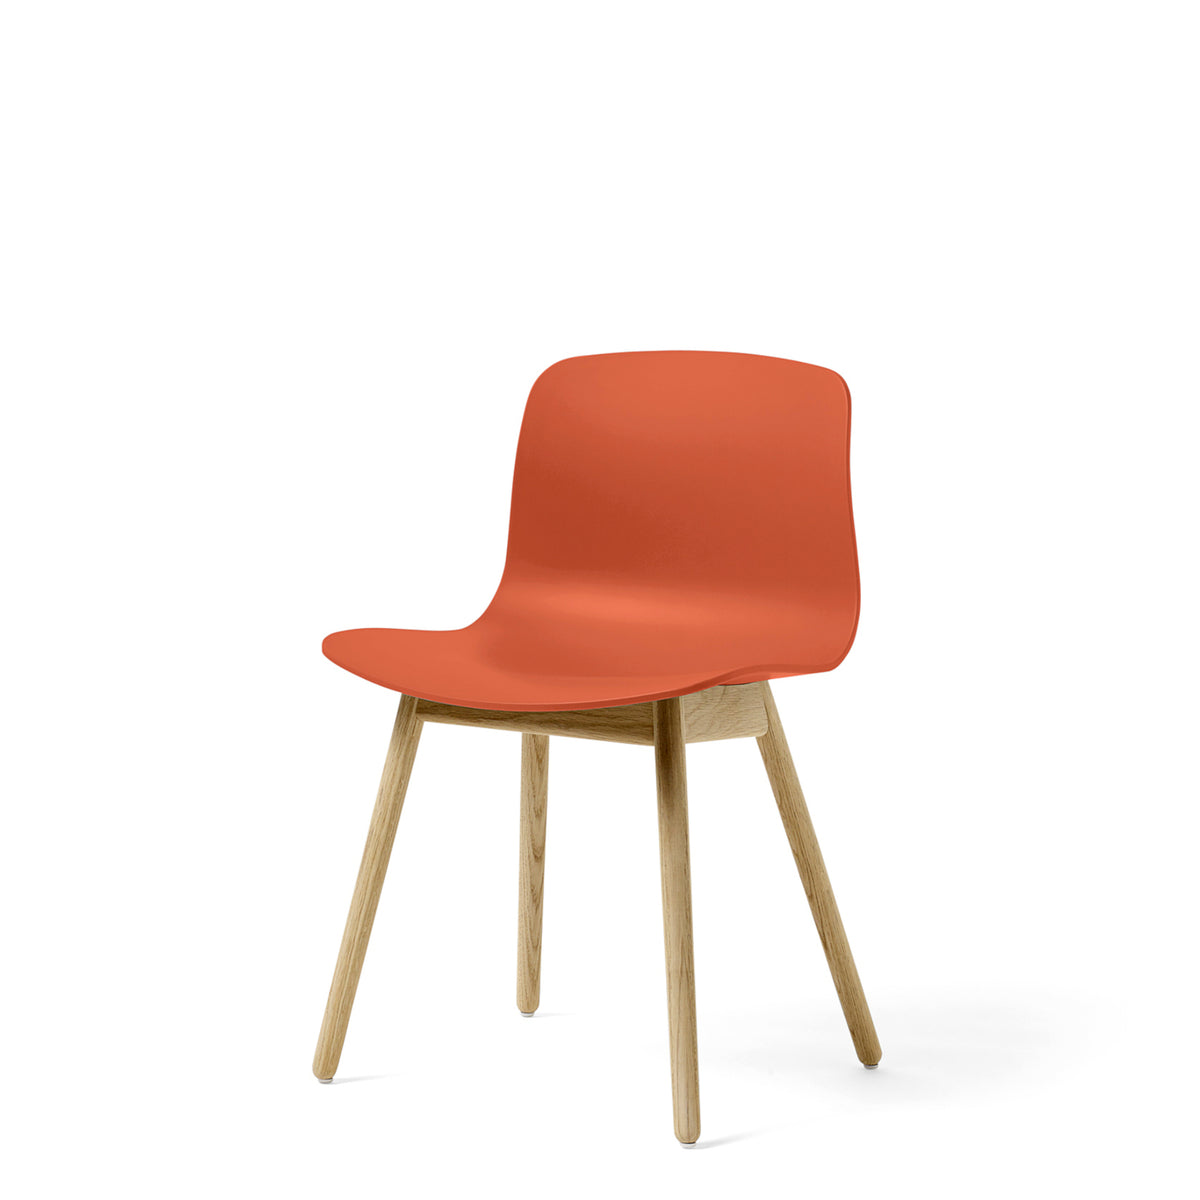 HAY About A Chair AAC12 Orange Chair with Matt Lacquered Solid Oak Frame